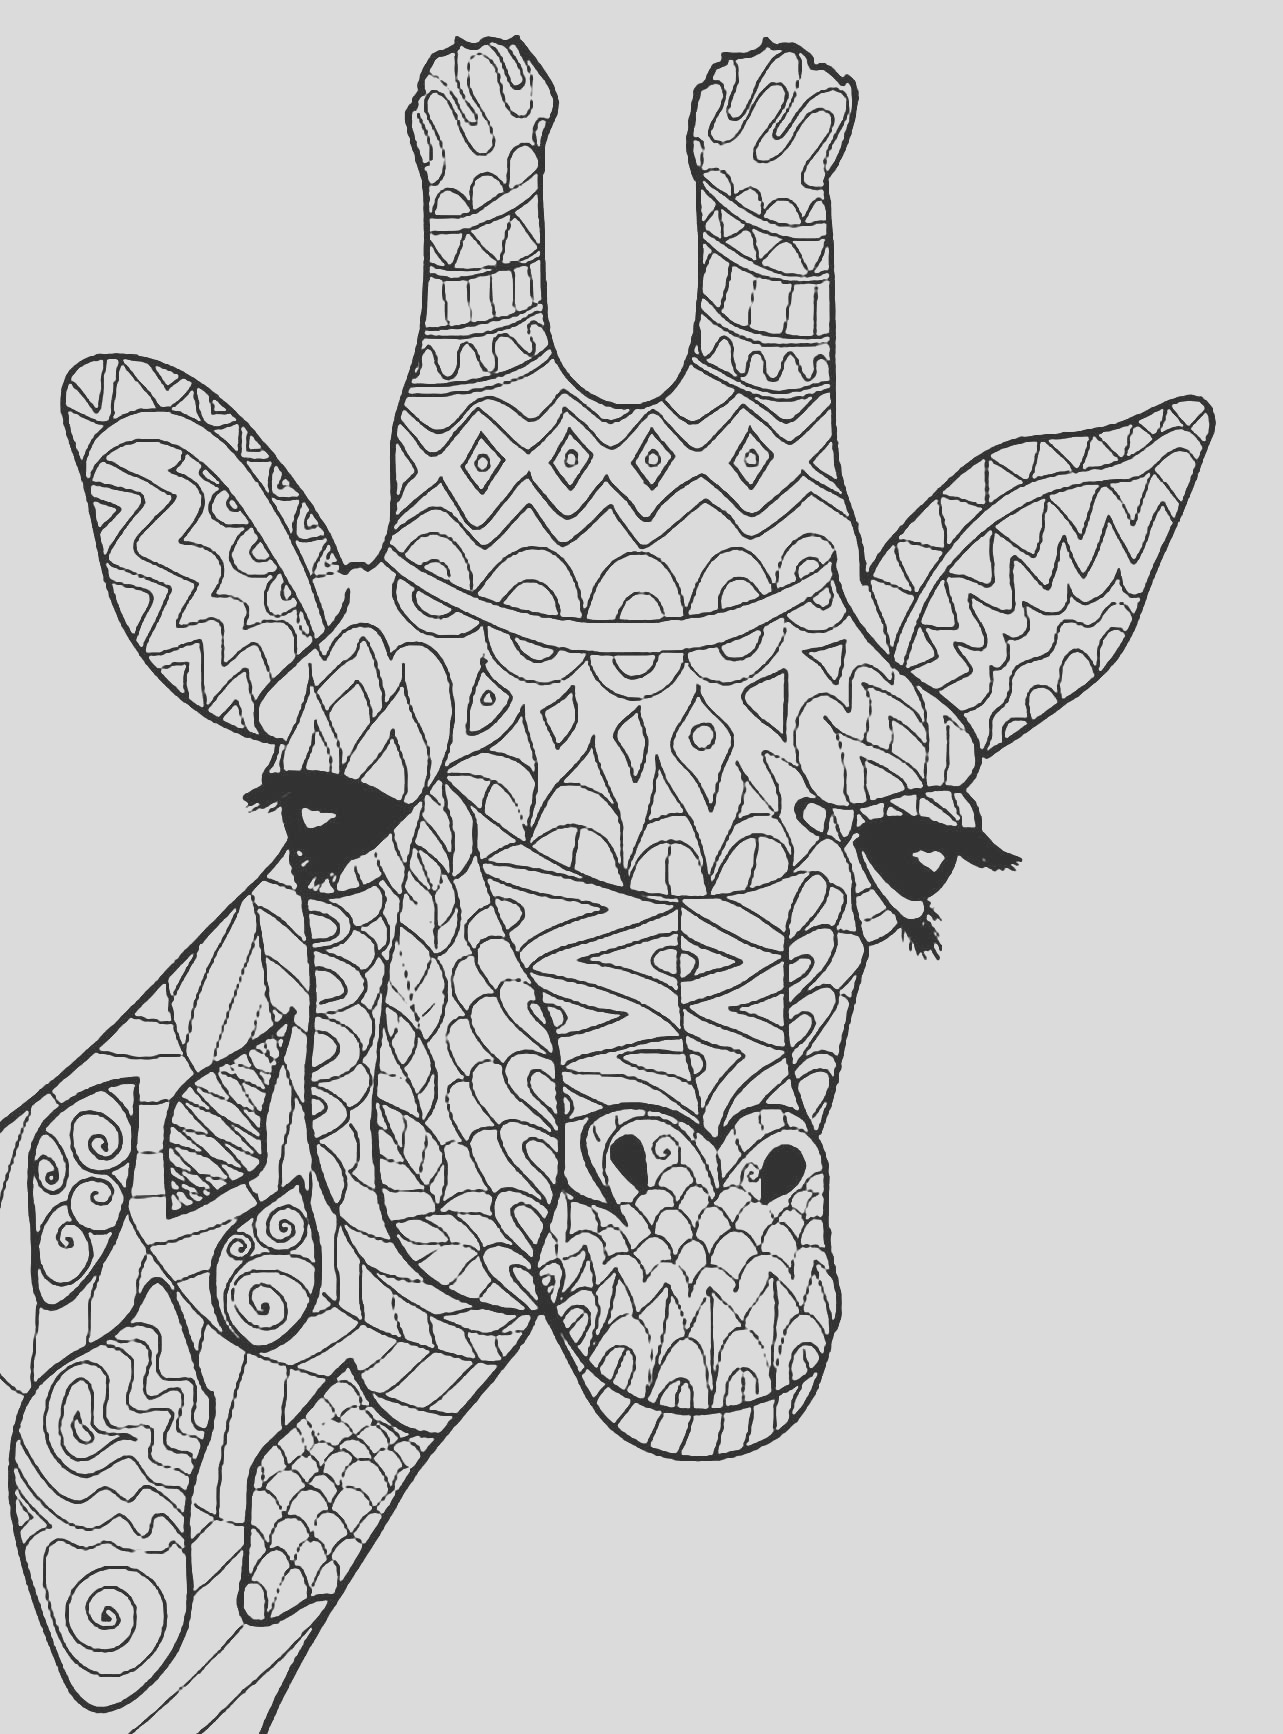 image=giraffes coloring pages for children giraffes 1